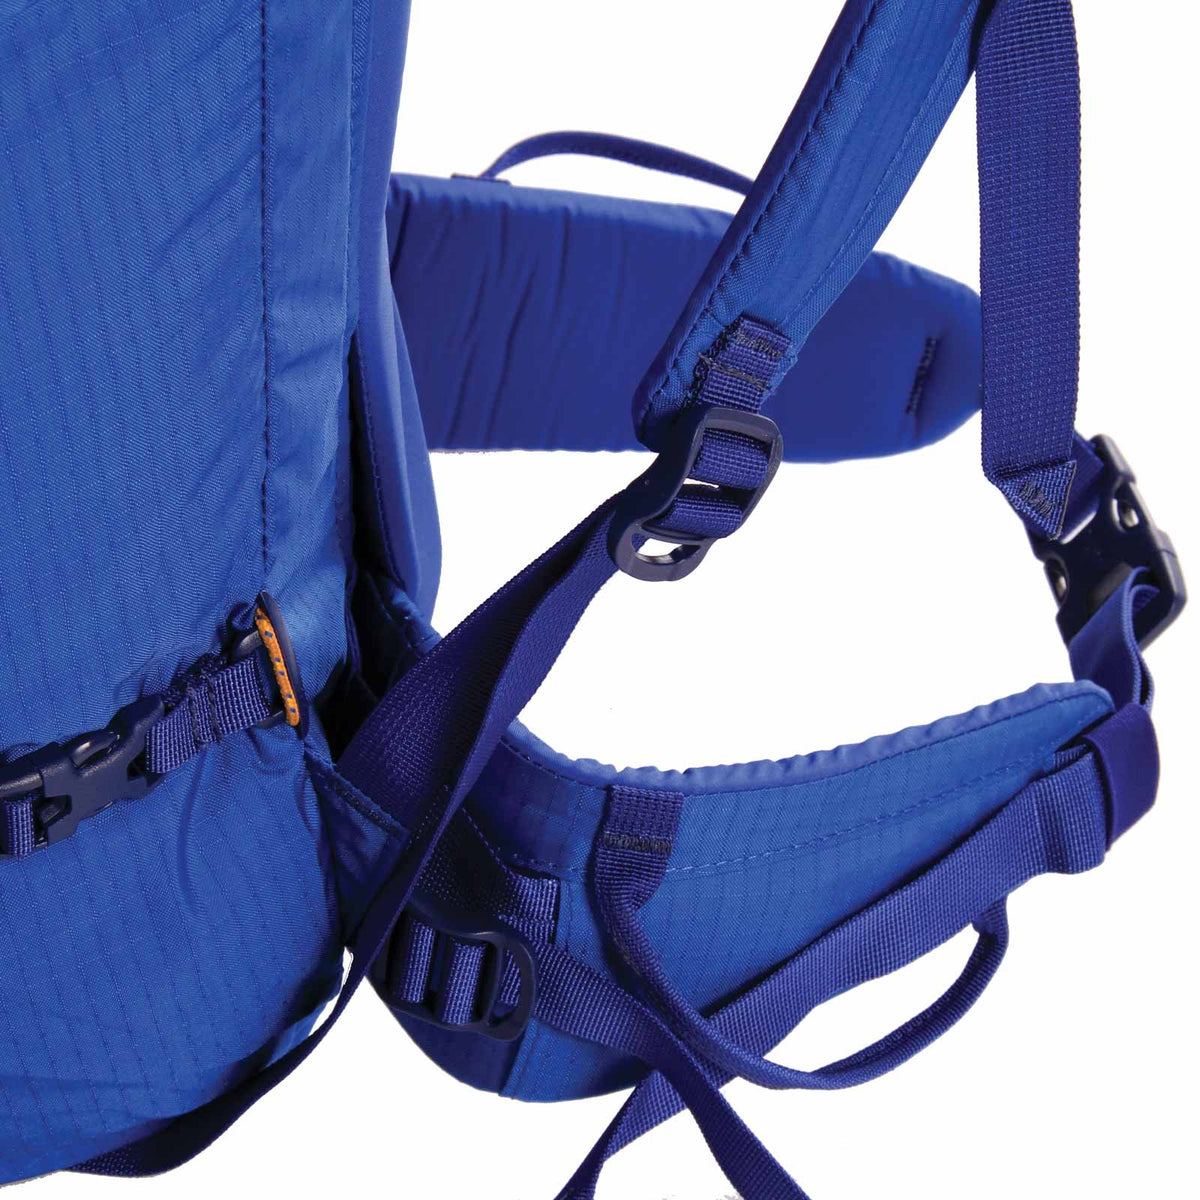 Blue Ice Warthog 45L rucksack, side view close up of hip straps